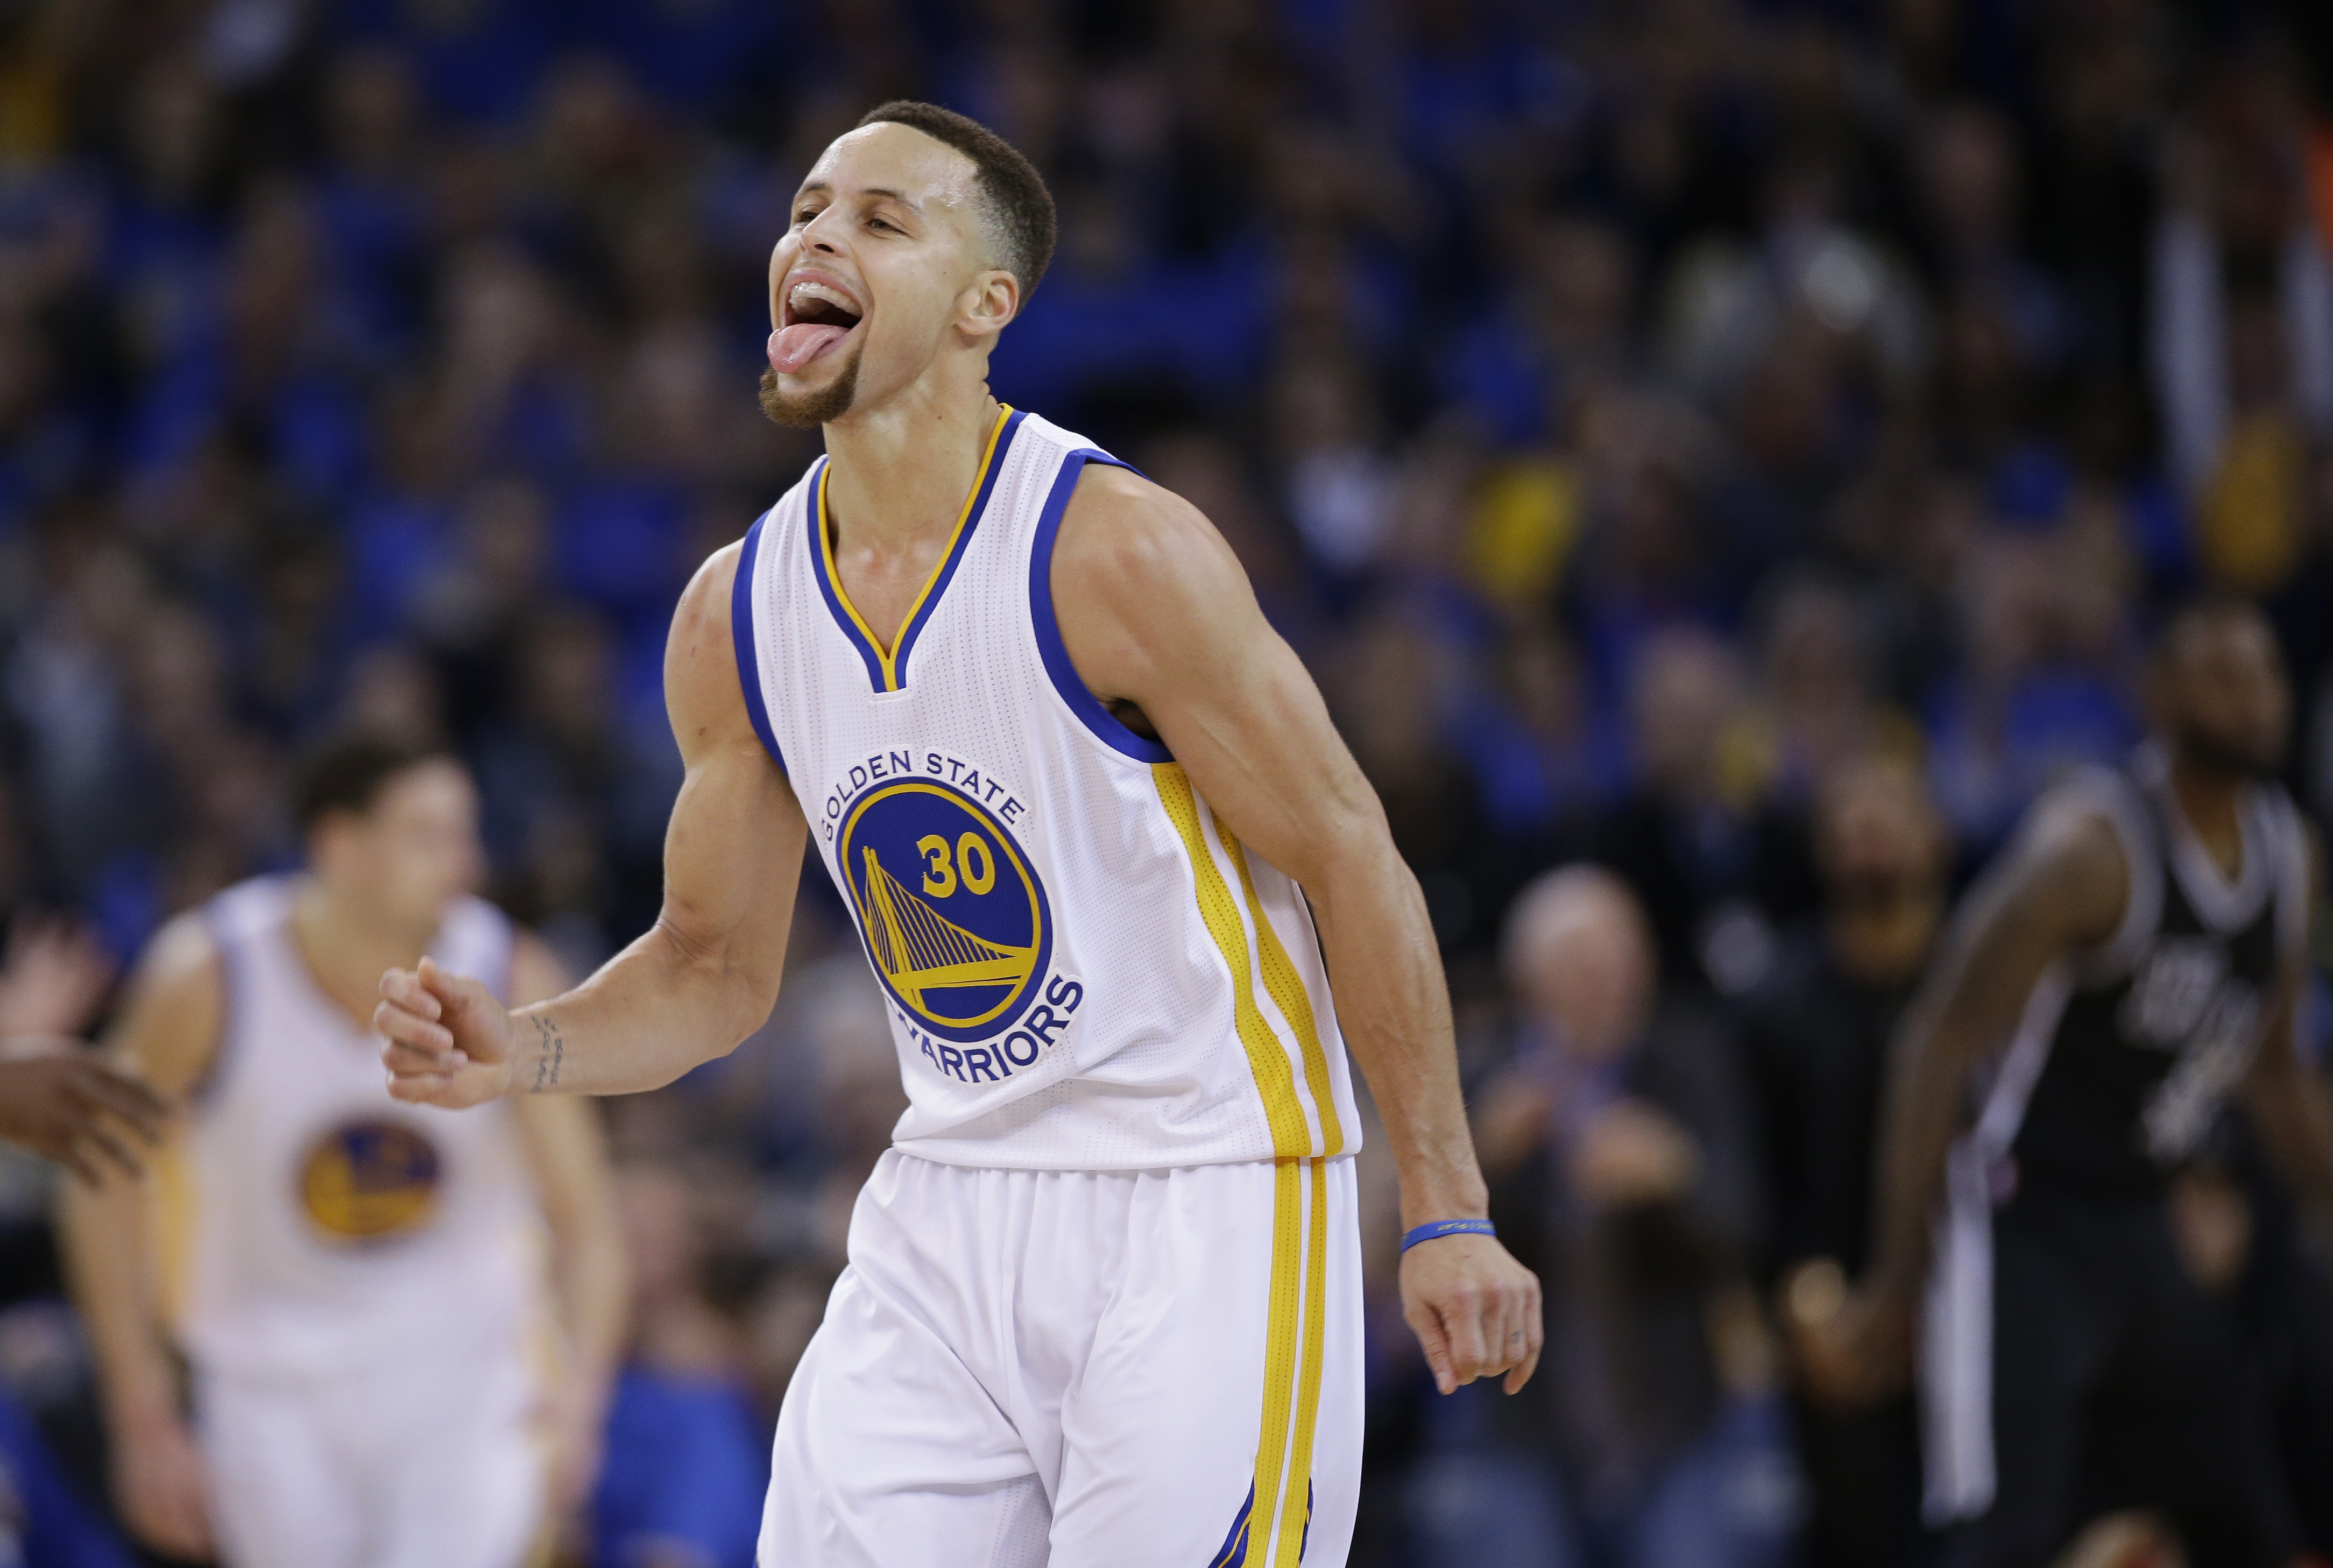 Golden State Warriors' Stephen Curry (30) celebrates after scoring against the San Antonio Spurs during the second half of an NBA basketball game Monday, Jan. 25, 2016, in Oakland, Calif. The Warriors won 120-90. (AP Photo/Marcio Jose Sanchez)